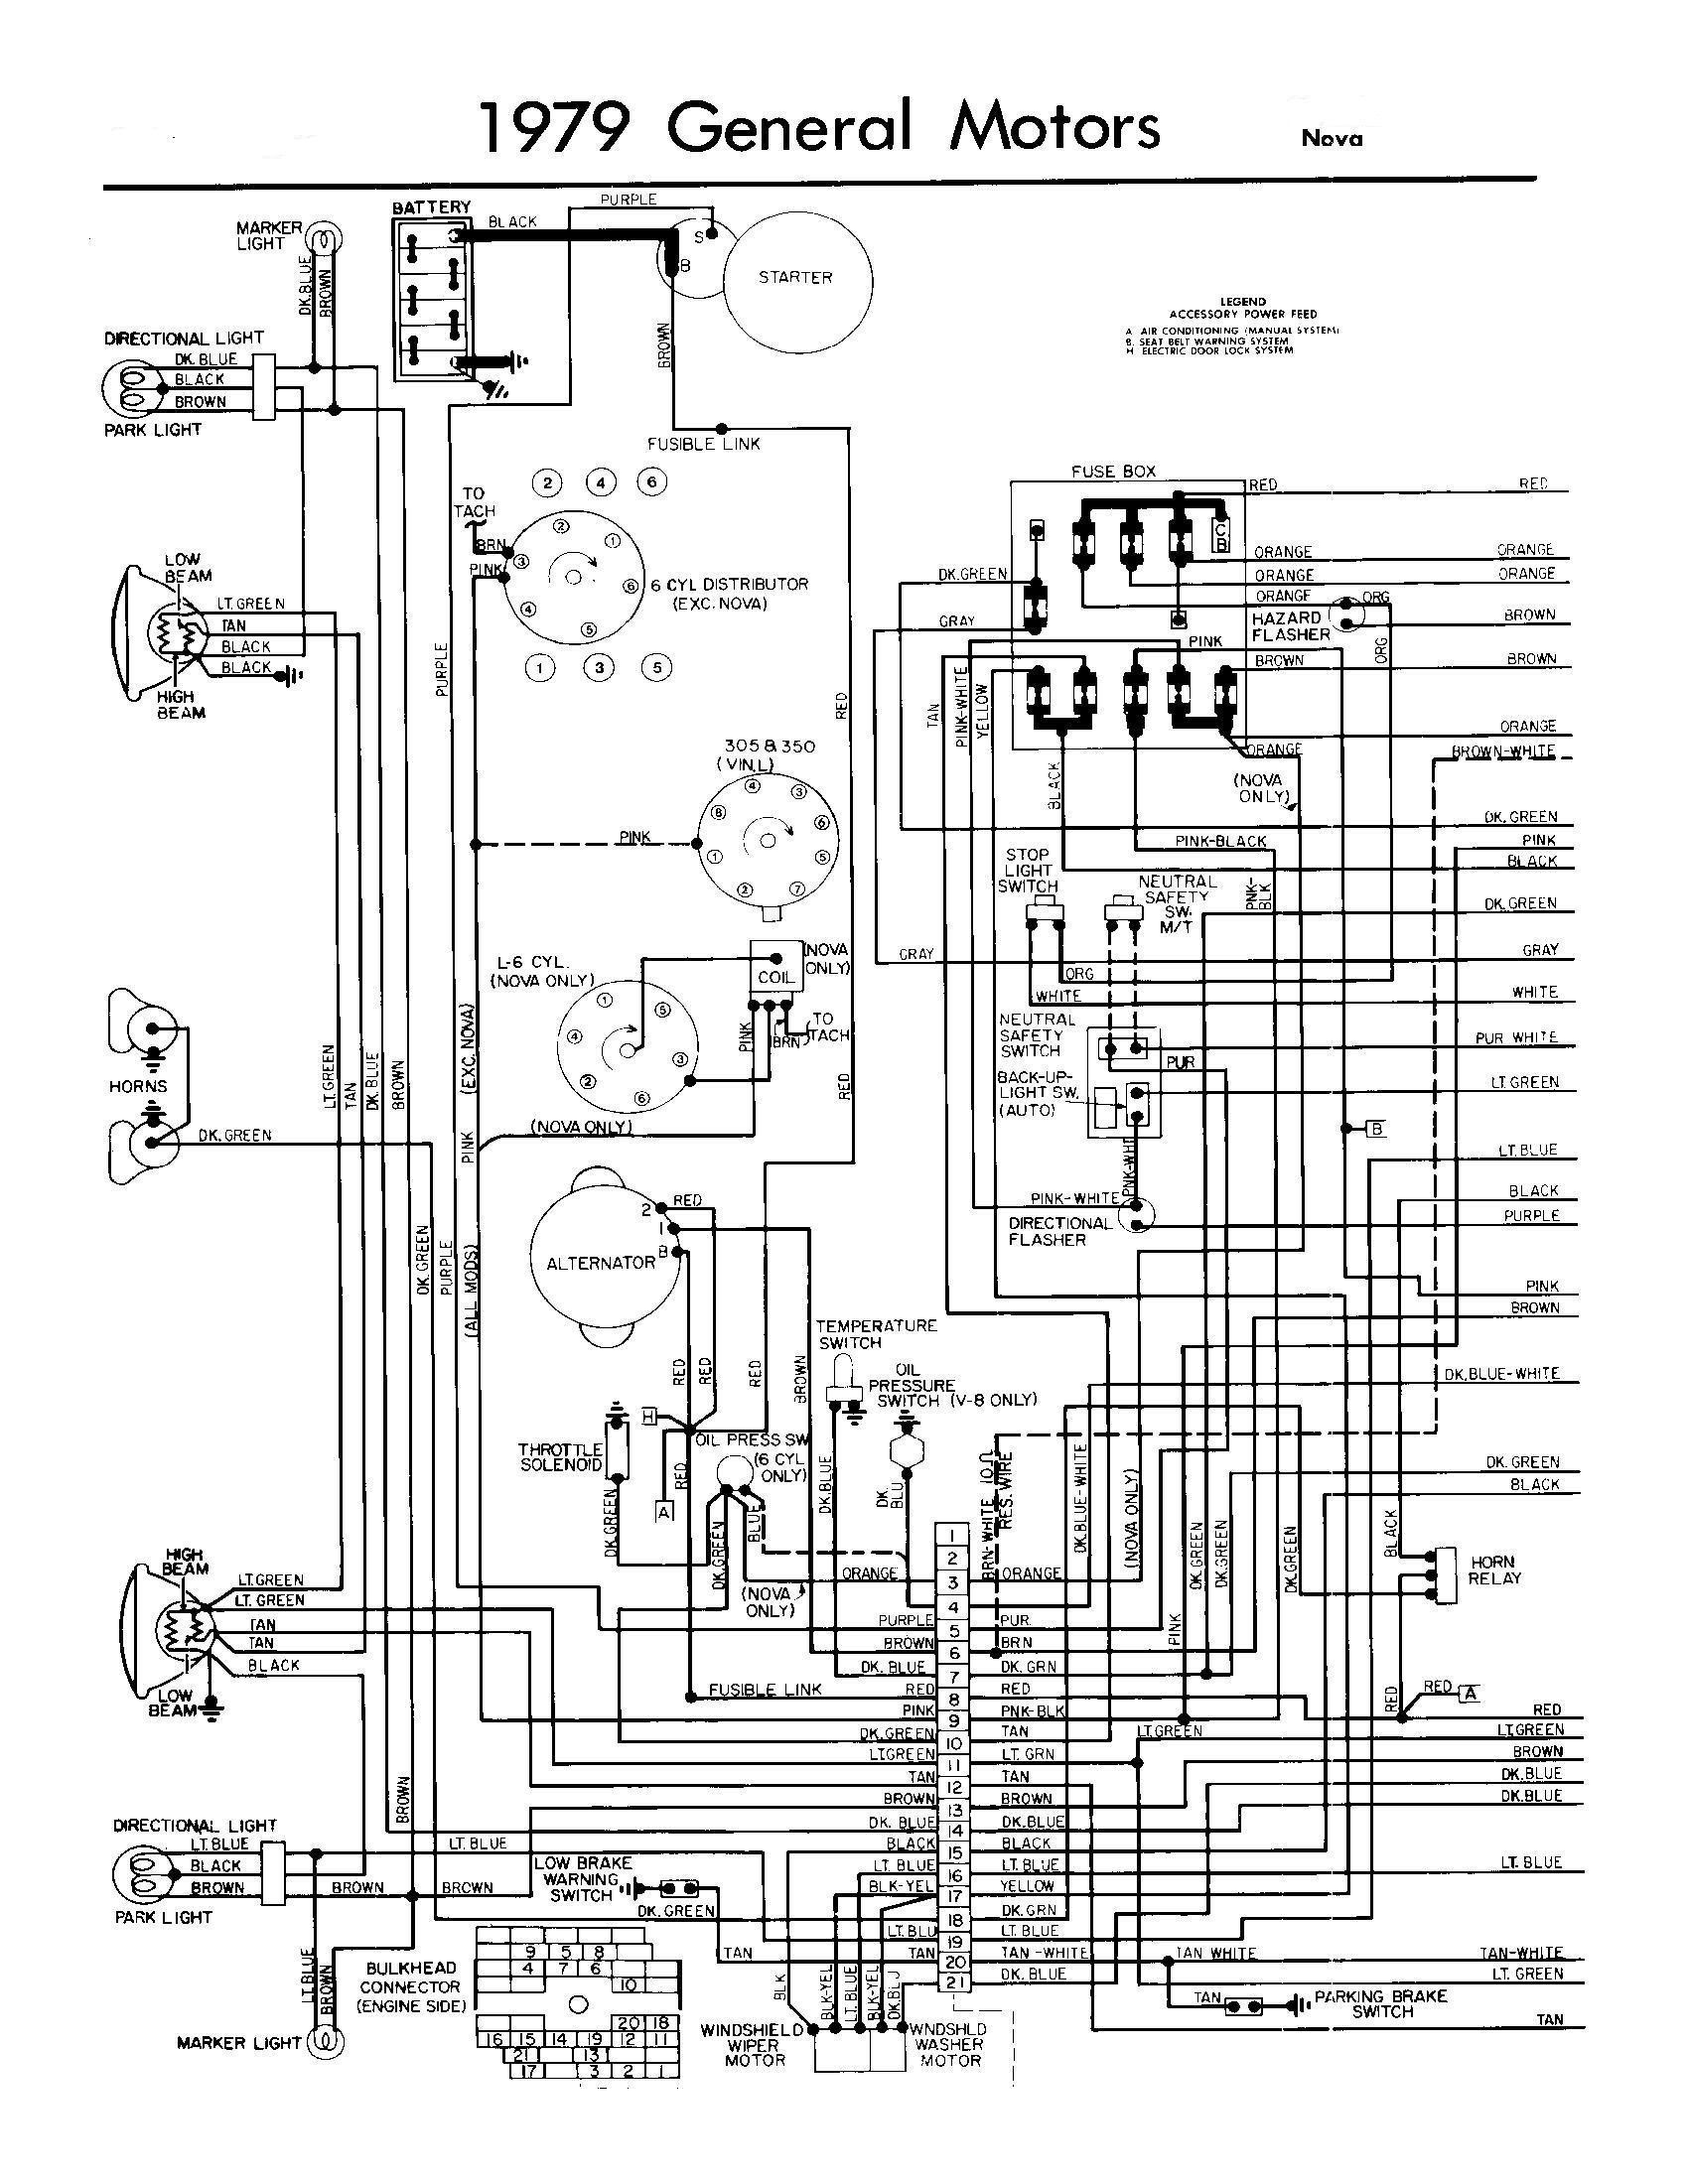 1975 Corvette Wiring Schematic wiring data